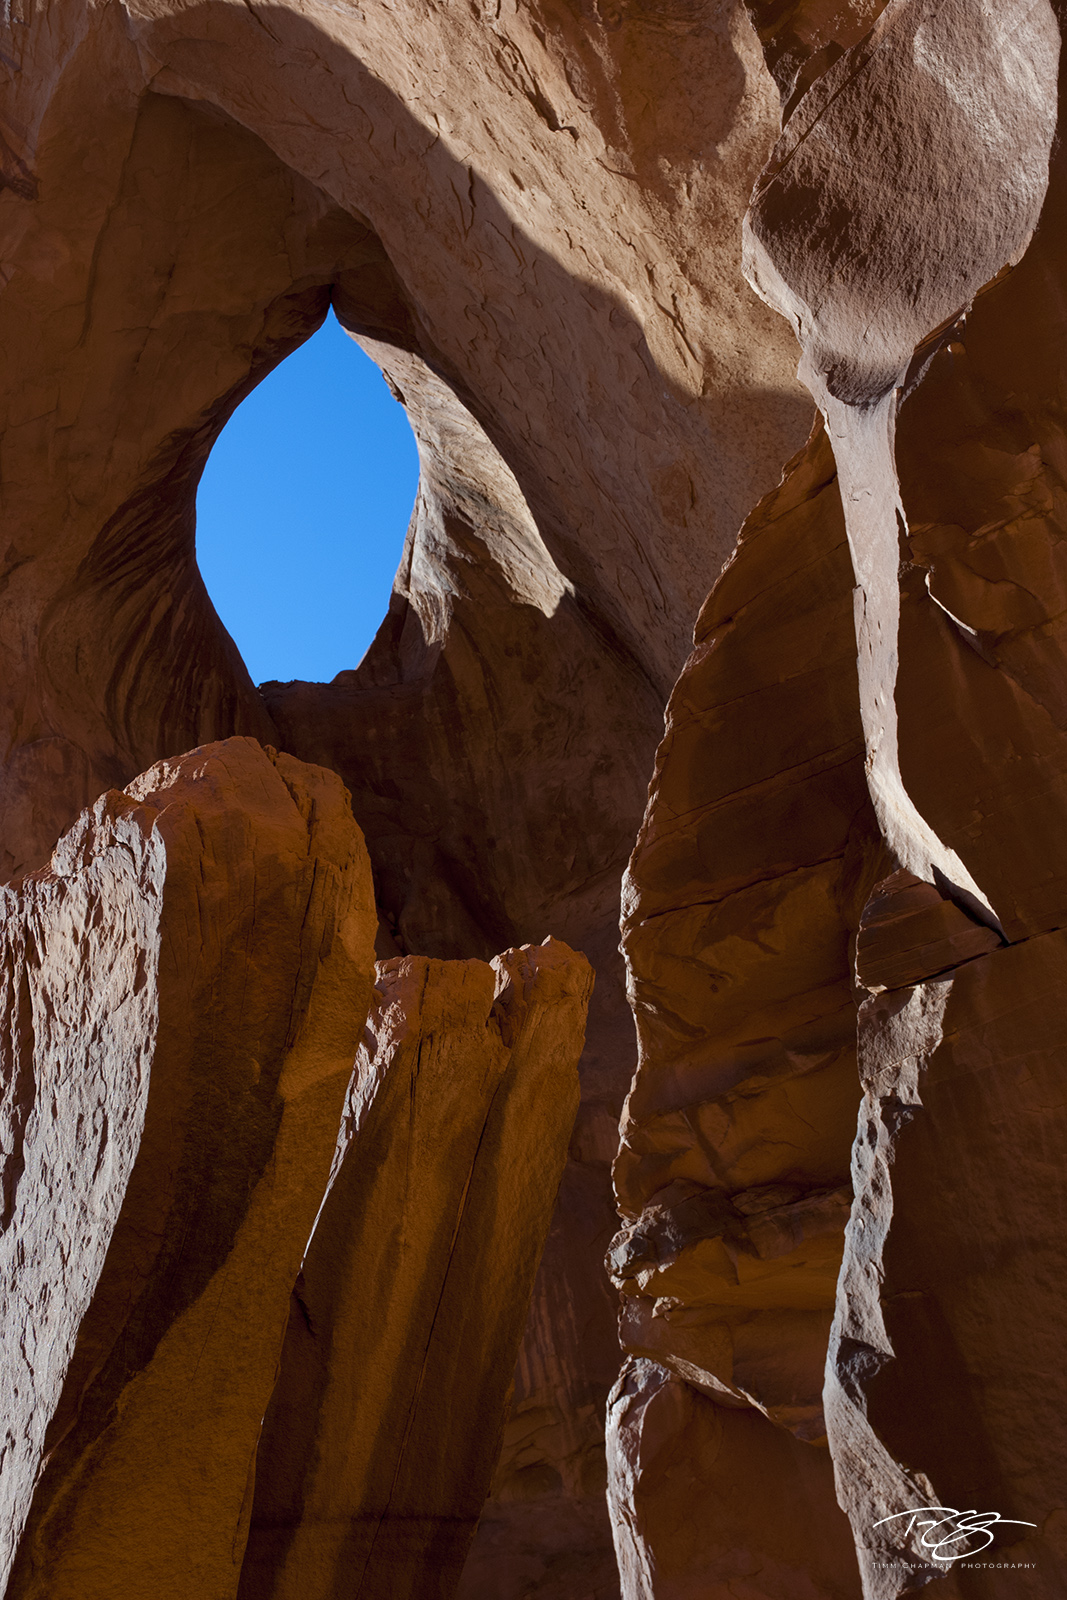 arizona, arch, sandstone, utah, arches national park, navajo, navajo nation, four corners, monument valley, eye, abstract, glow, orange, blue, photo